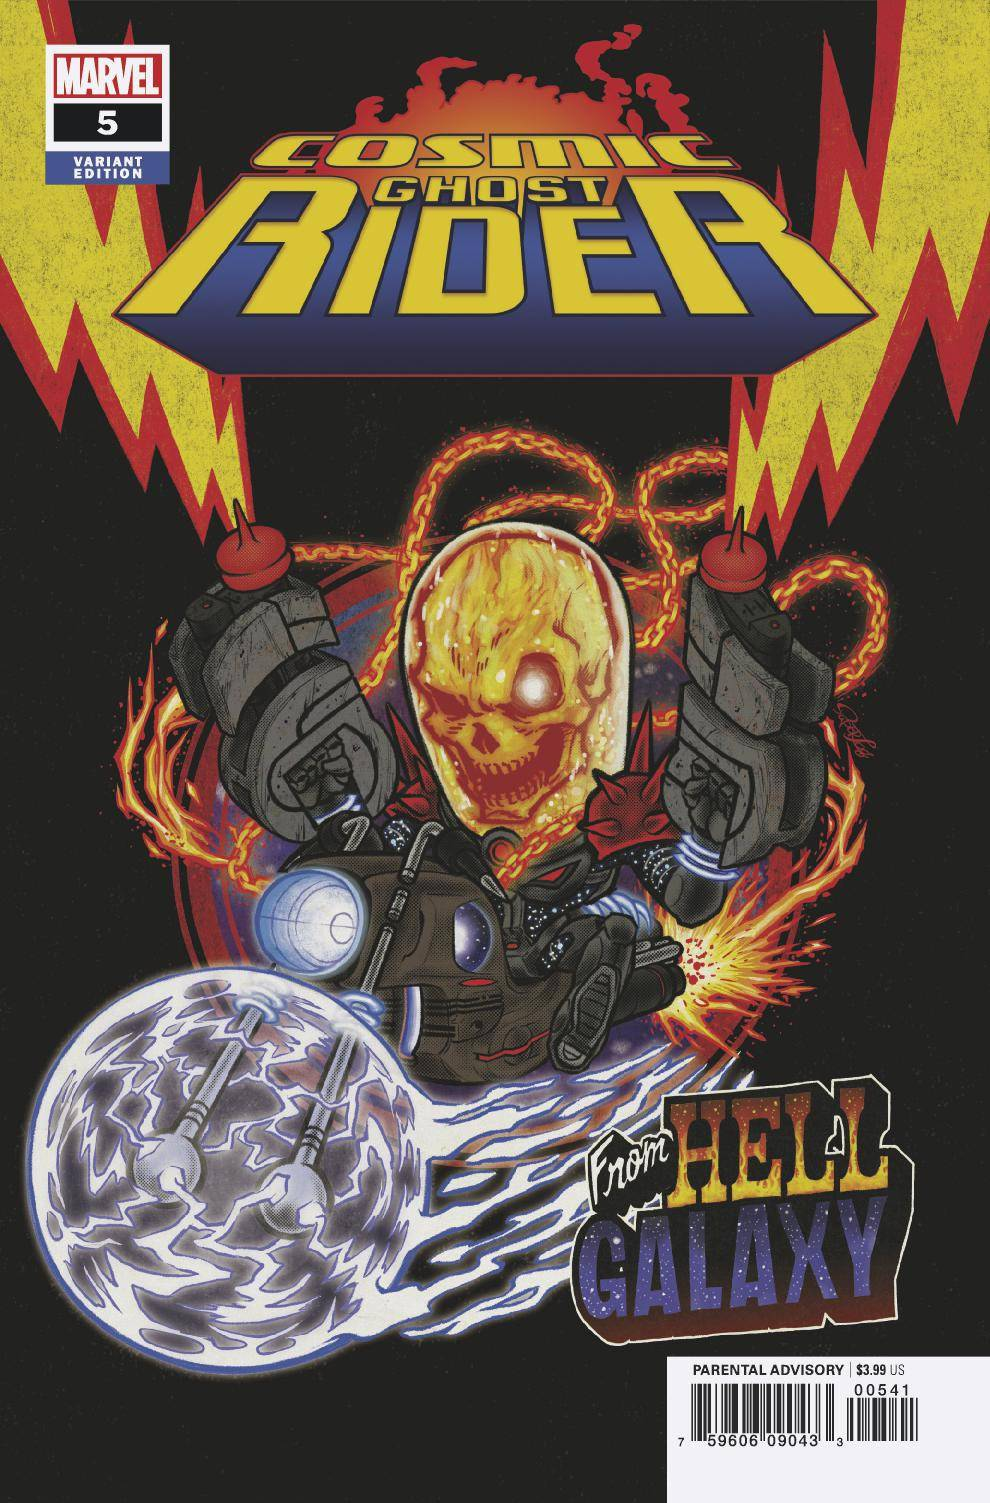 11/14/2018 COSMIC GHOST RIDER #5 (OF 5) SUPERLOG VAR